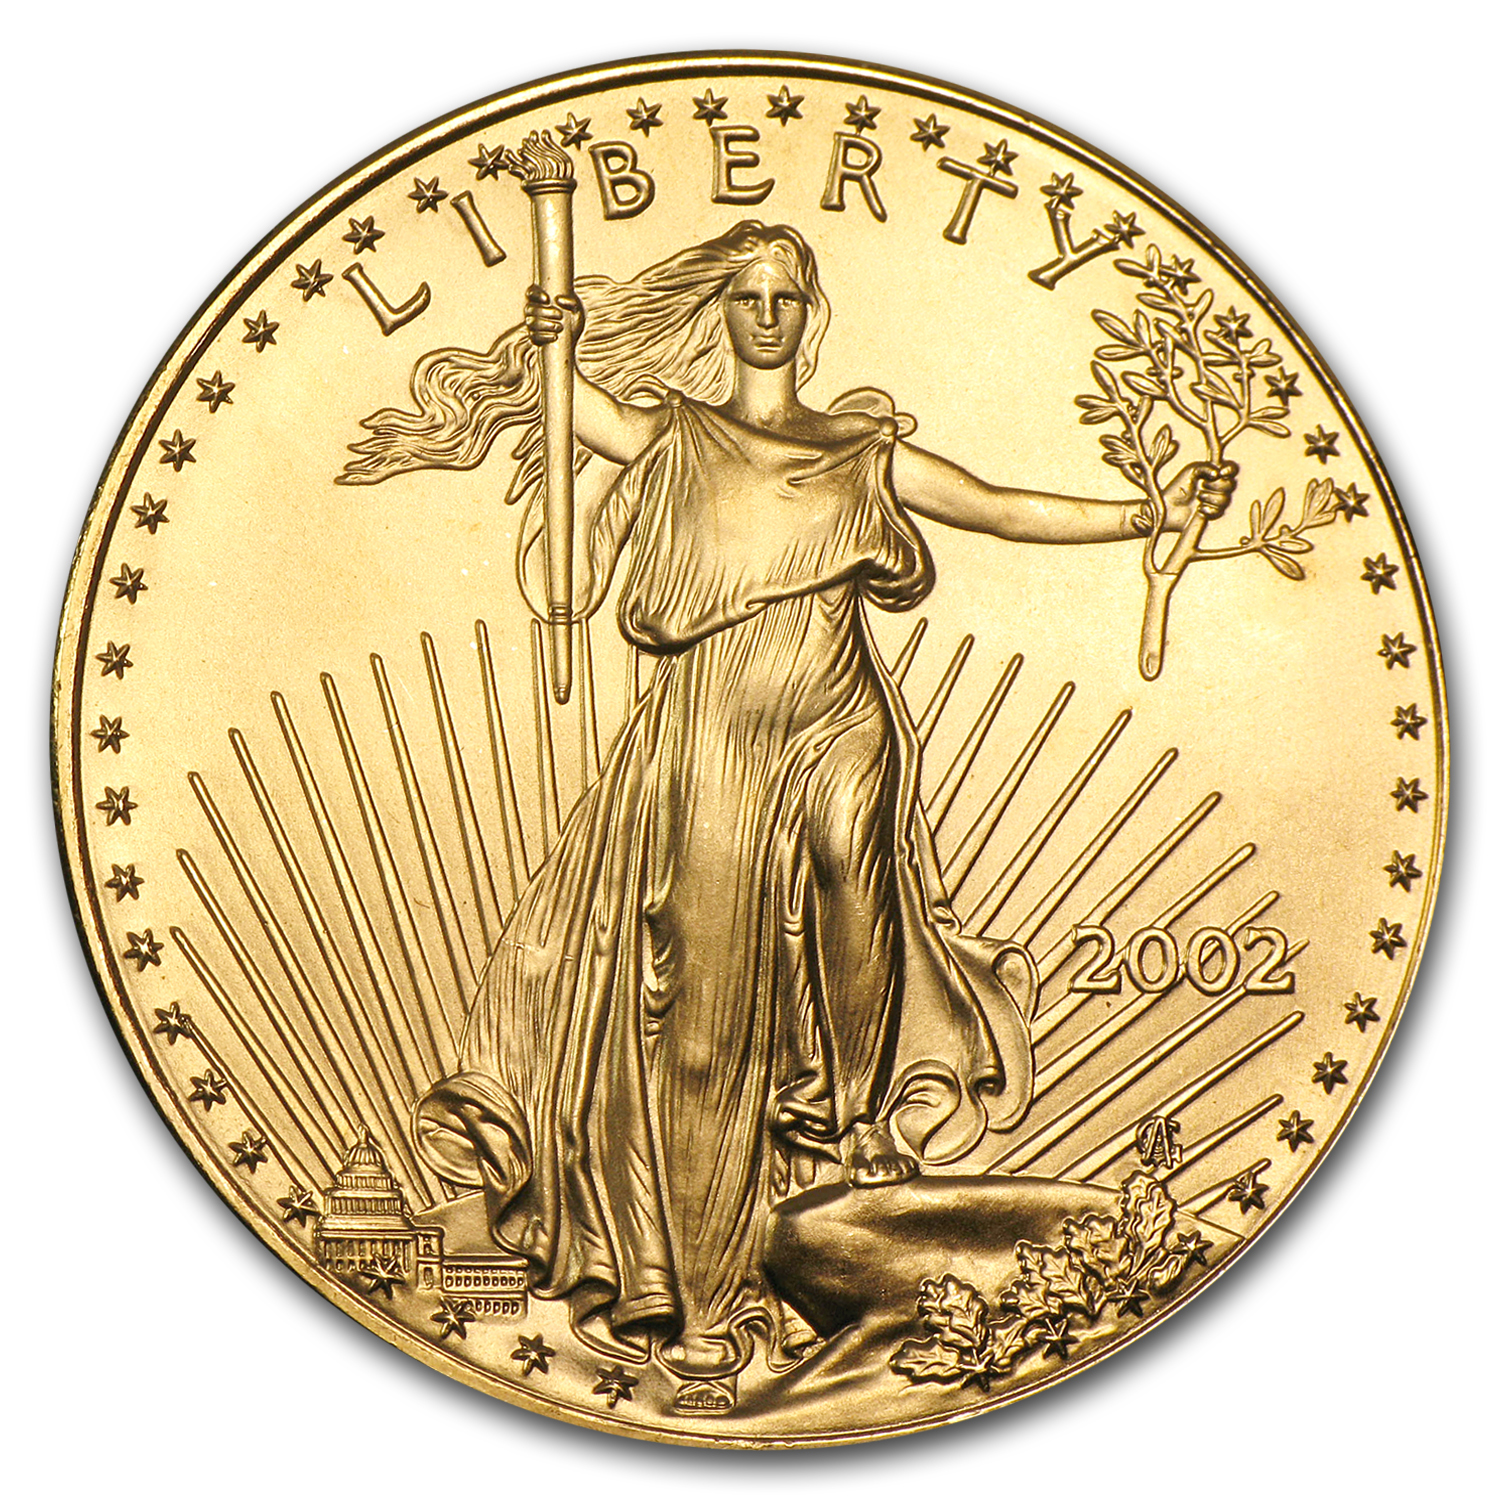 2002 1 oz Gold American Eagle (BU)